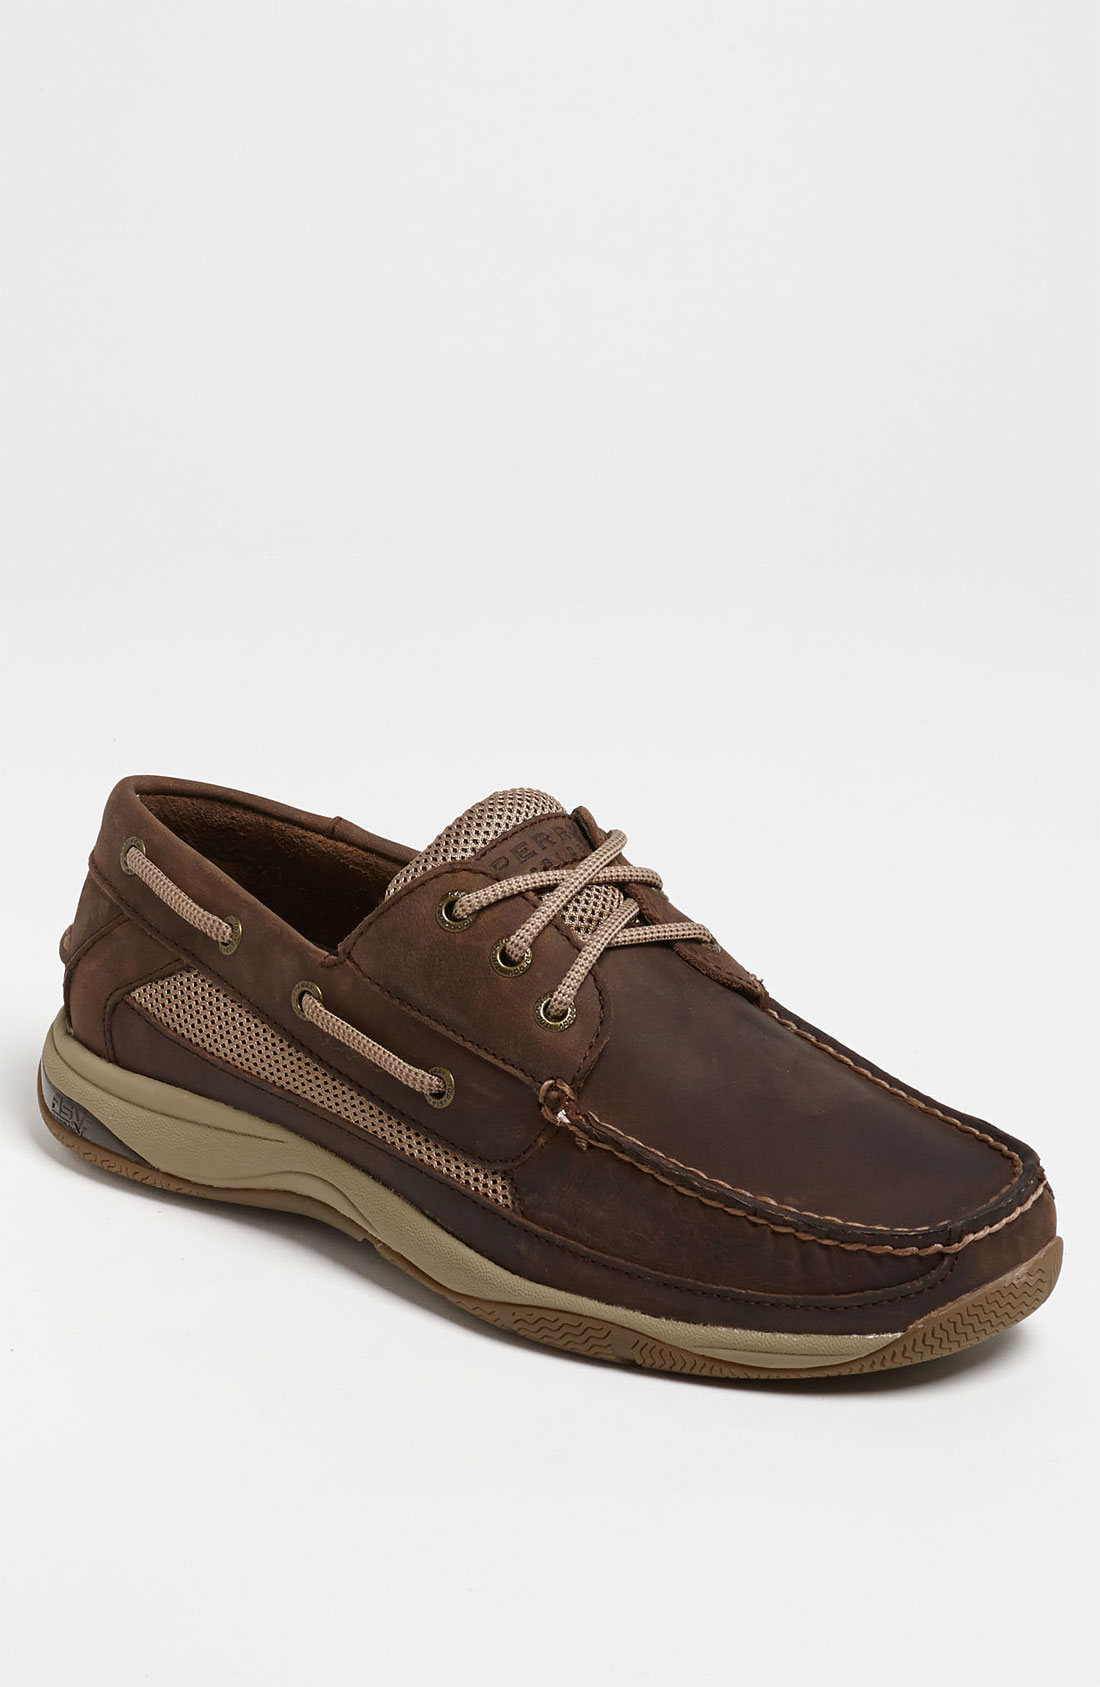 Sperry Billfish Boat Shoes Review